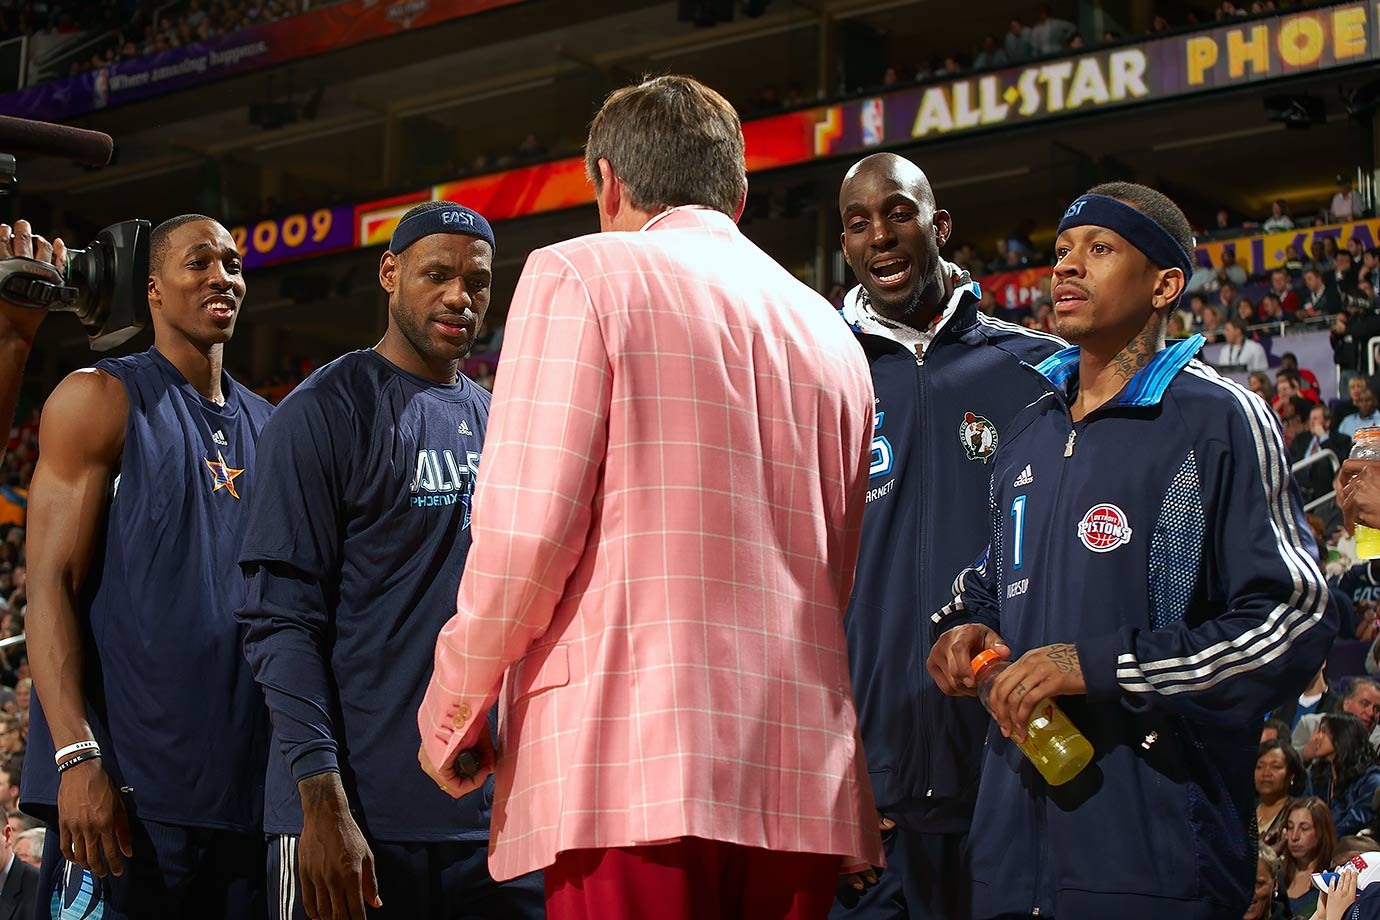 2009 NBA All-Star Game